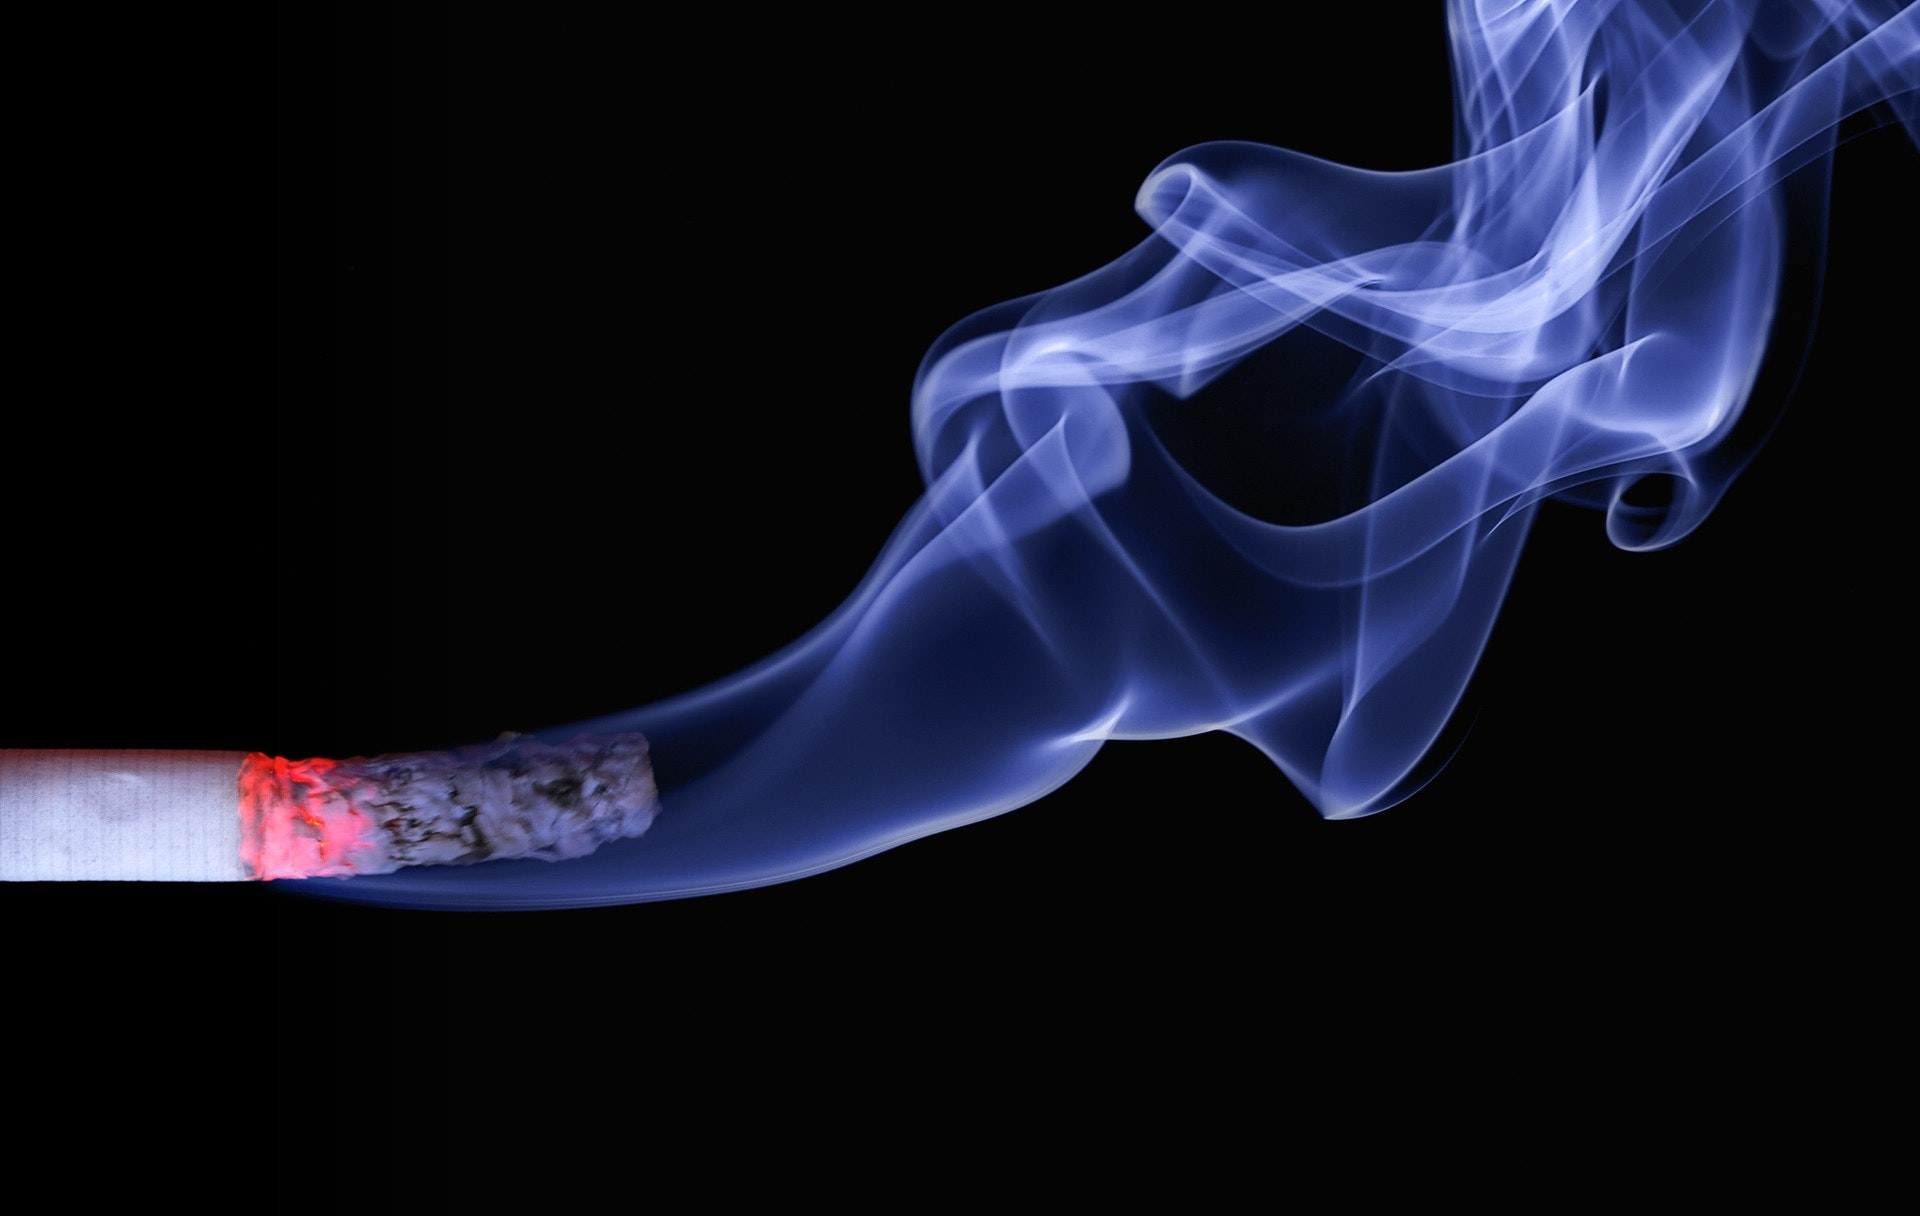 Lighted Cigarette Stick And White Smoke Wallpaper Free